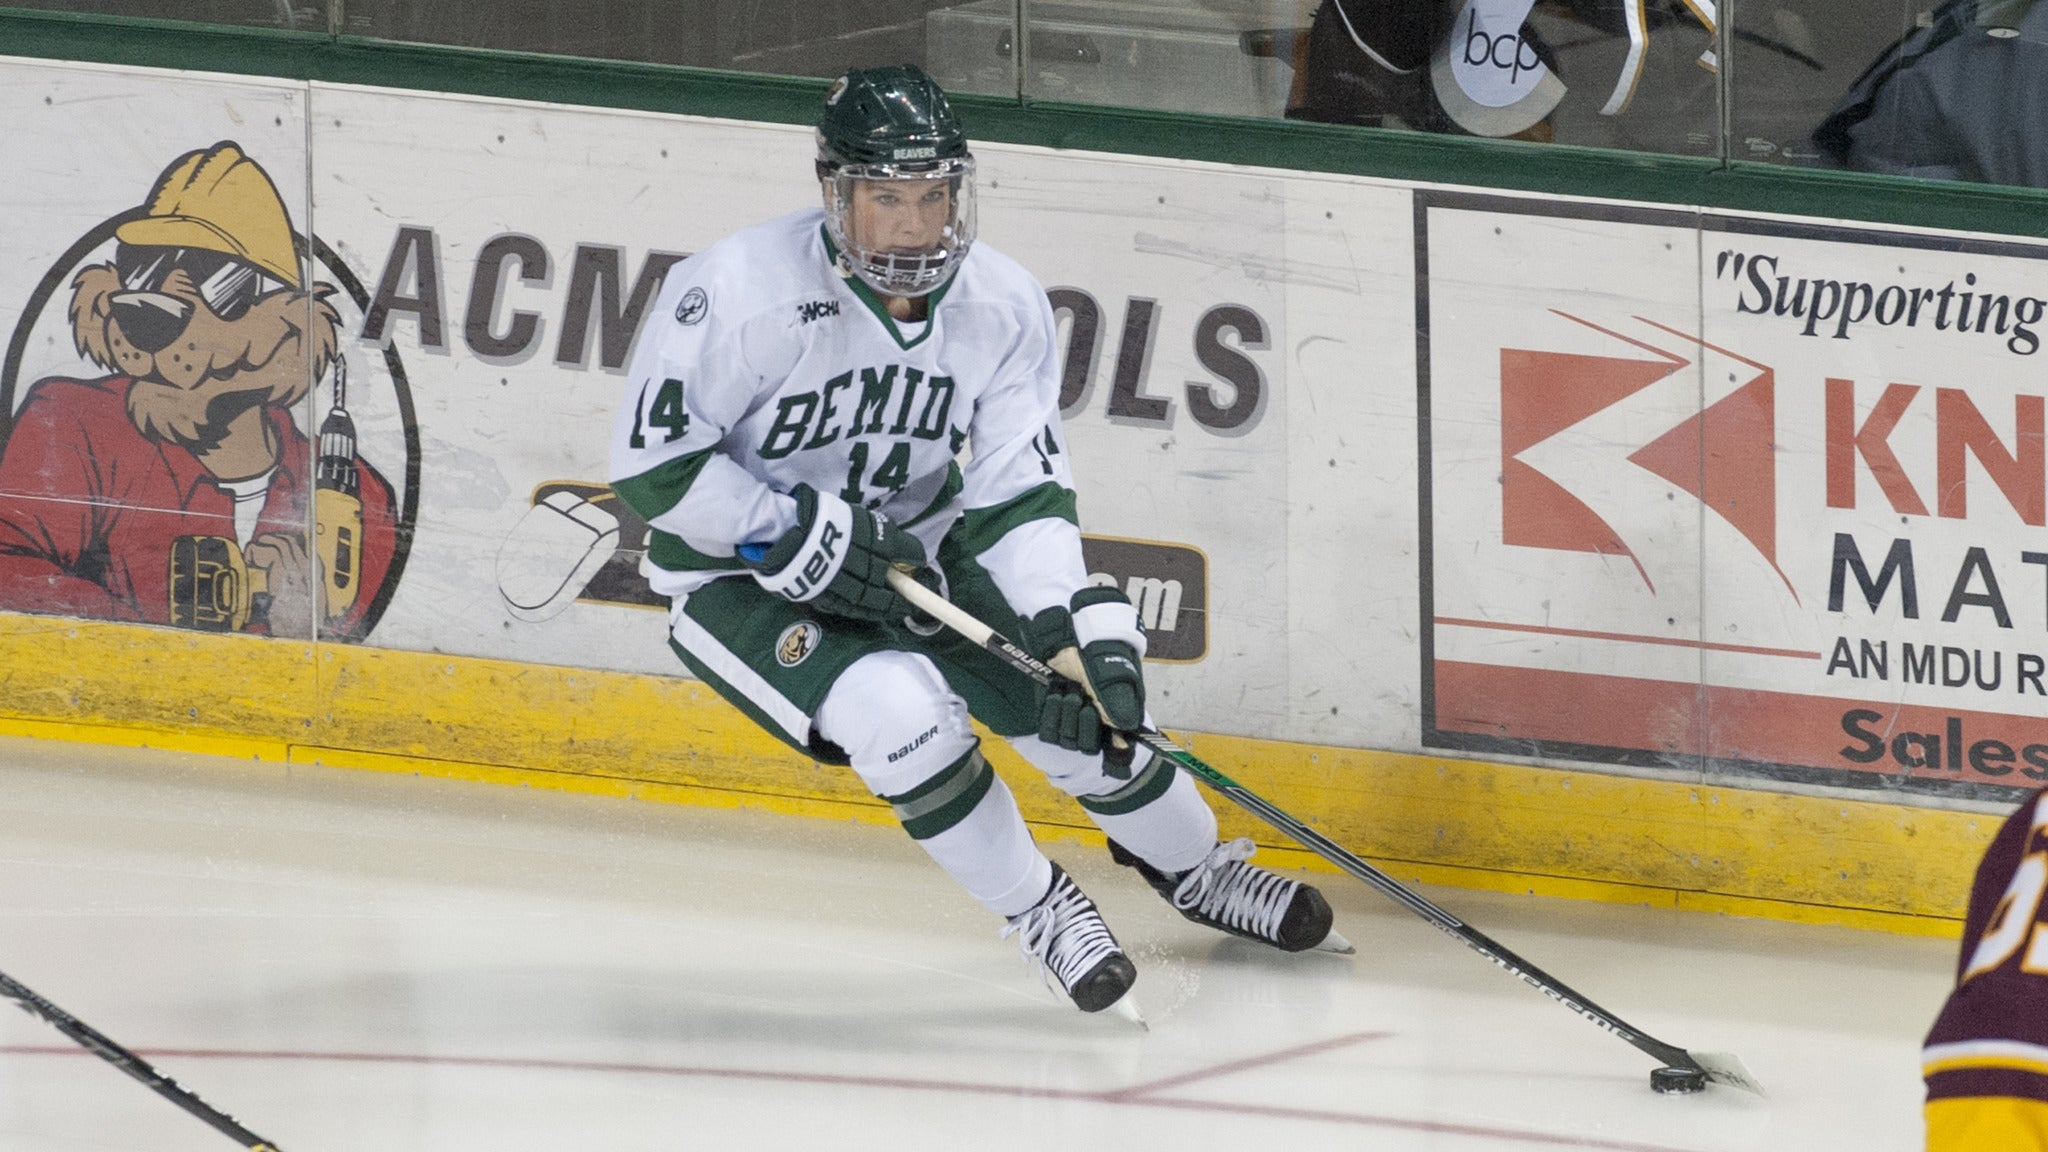 Bemidji State University Beavers Women's Hockey Vs Minnesota - Bemidji, MN 56601